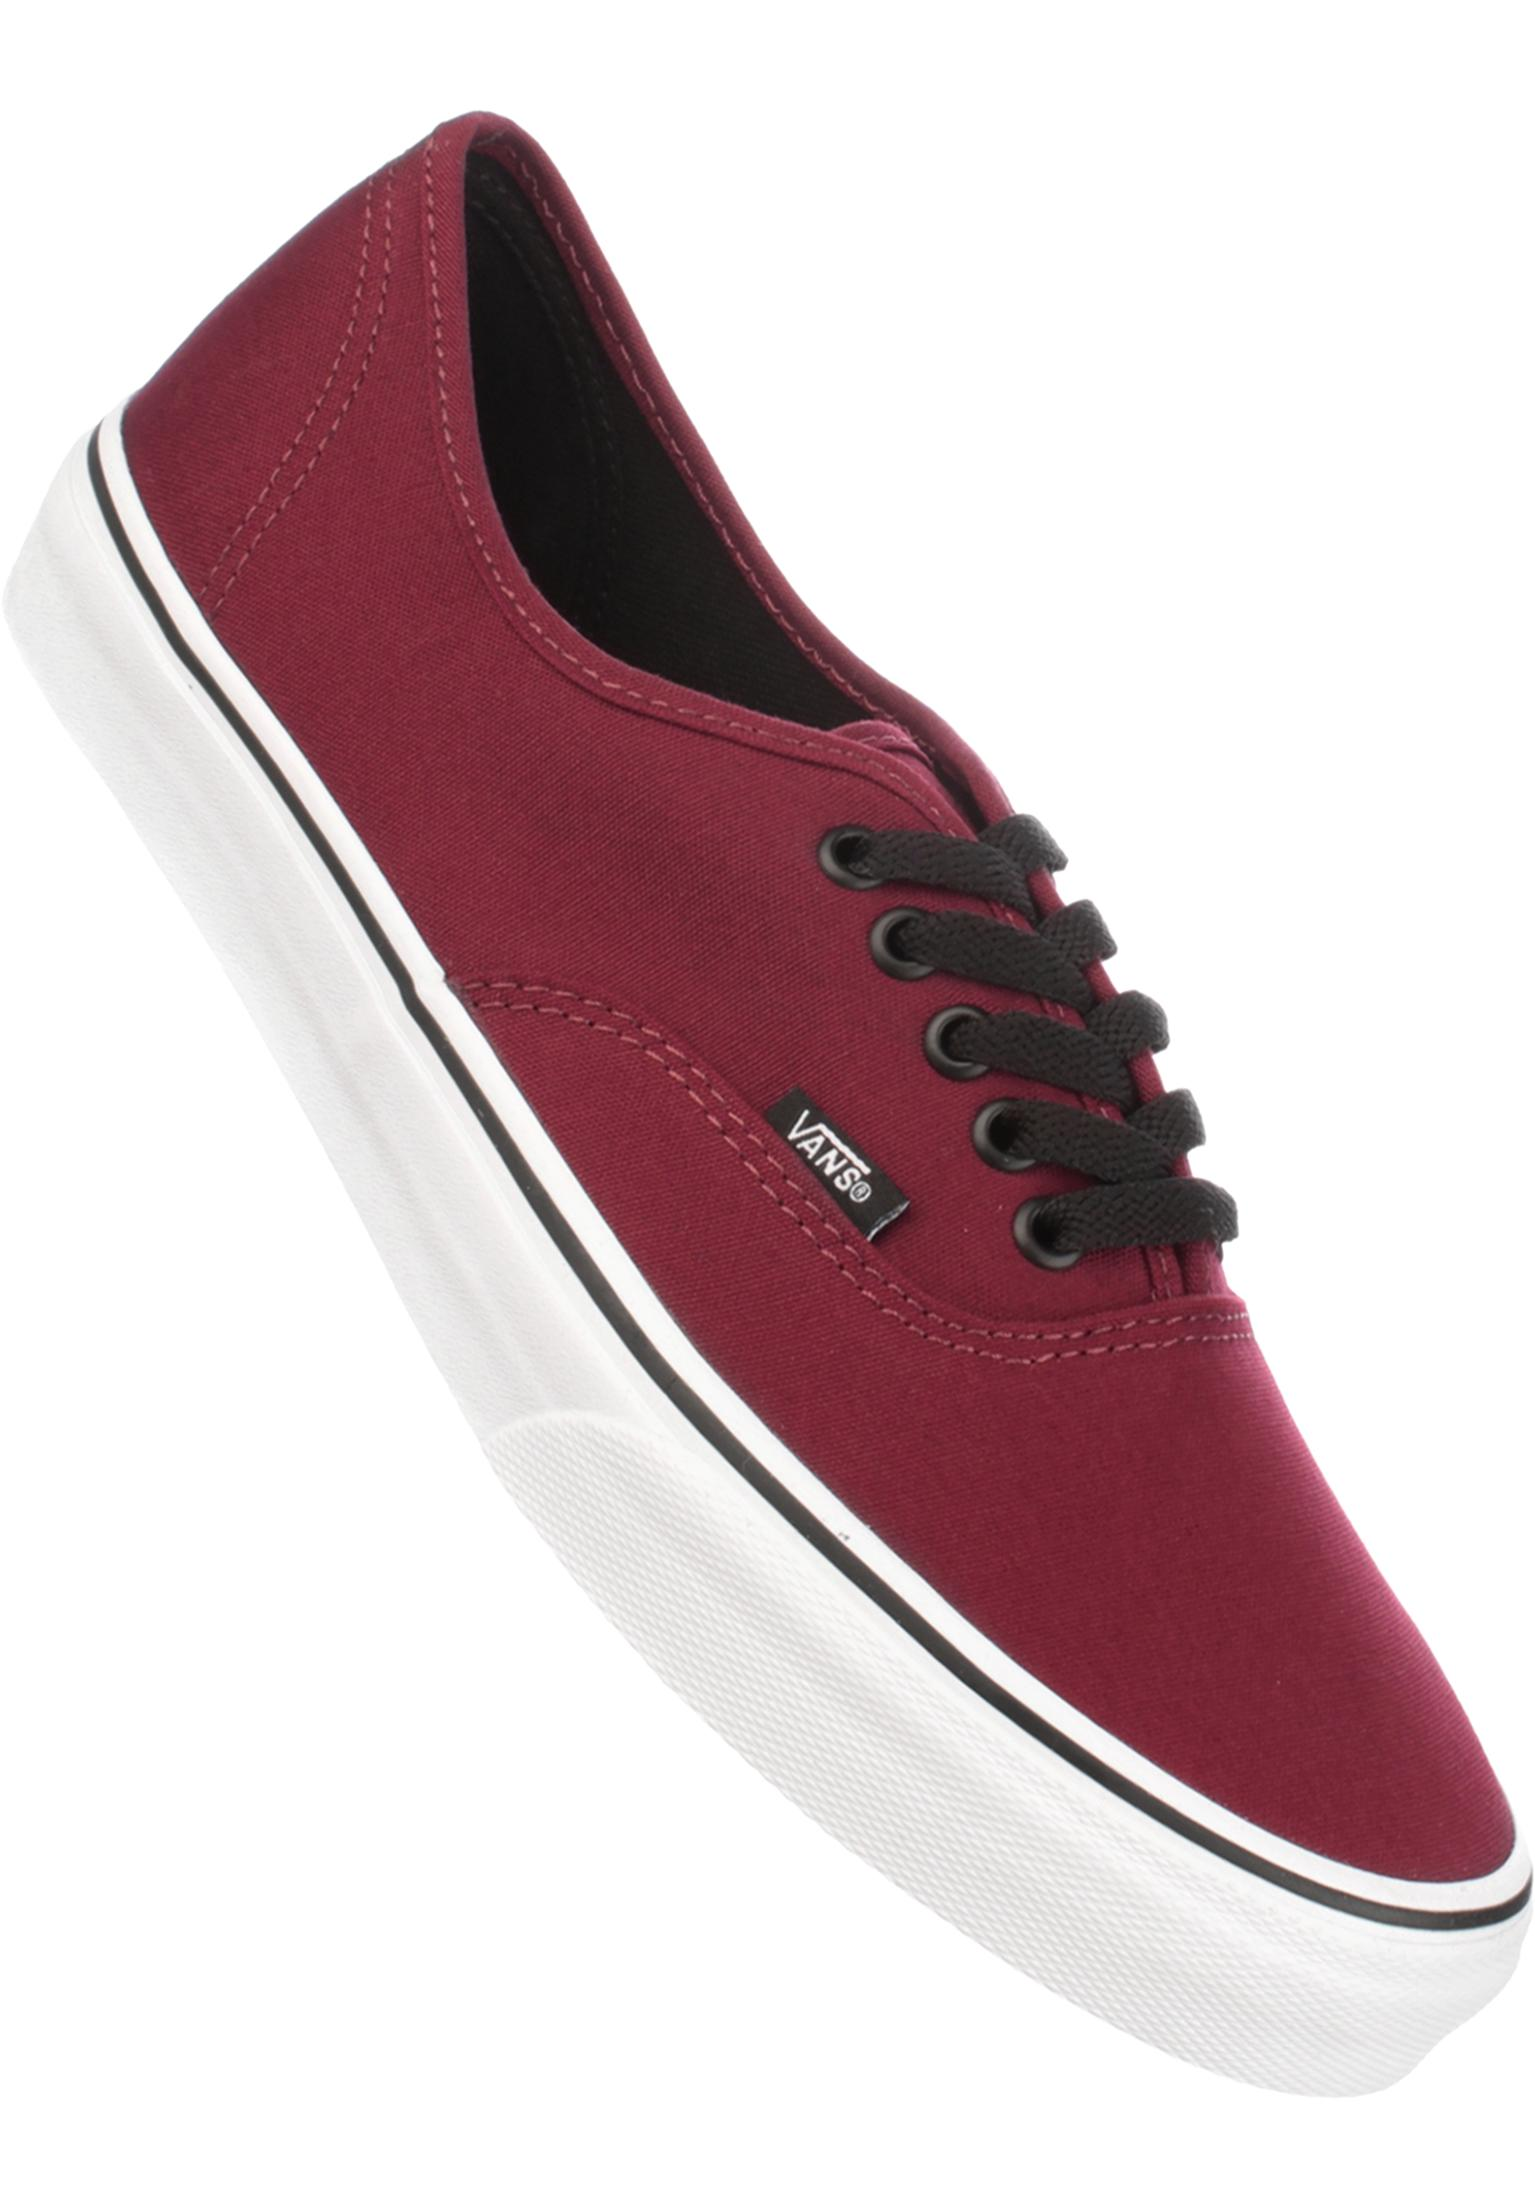 7c1a22d52700fc Authentic Vans All Shoes in burgundy-white for Men